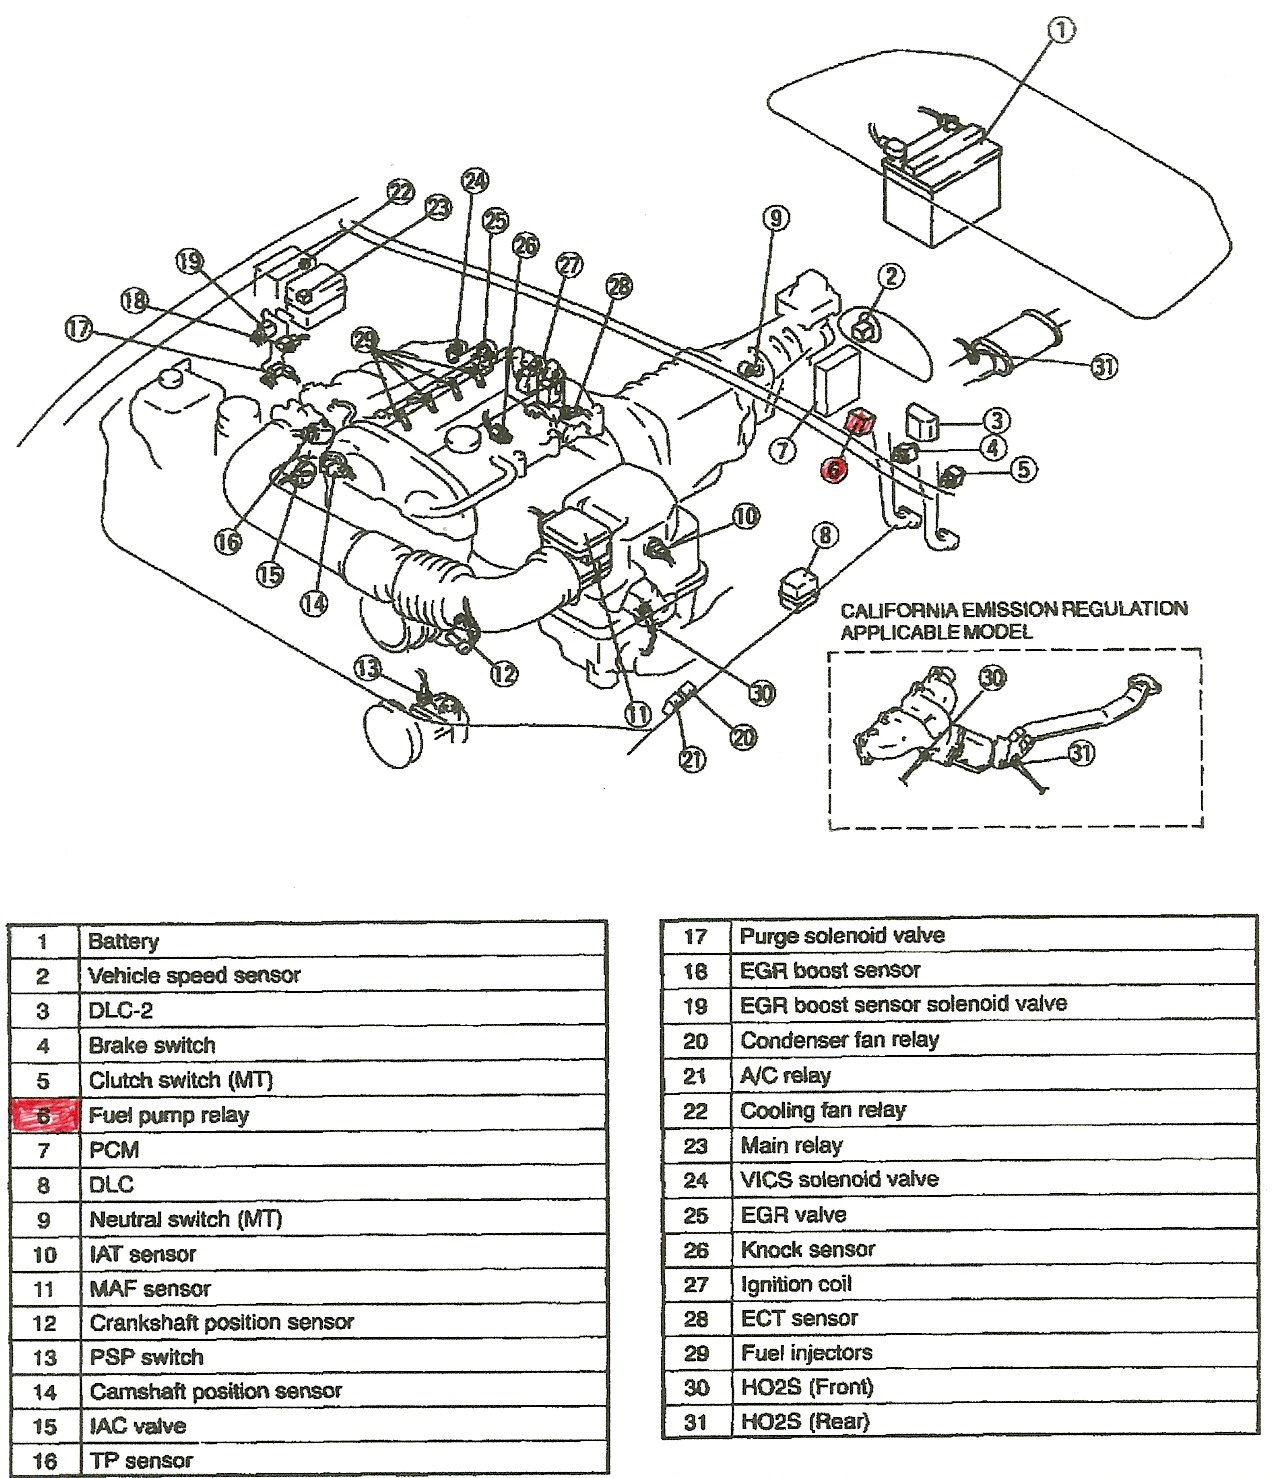 1994 Mazda Protege Fuel Pump on saturn sl2 parts diagram